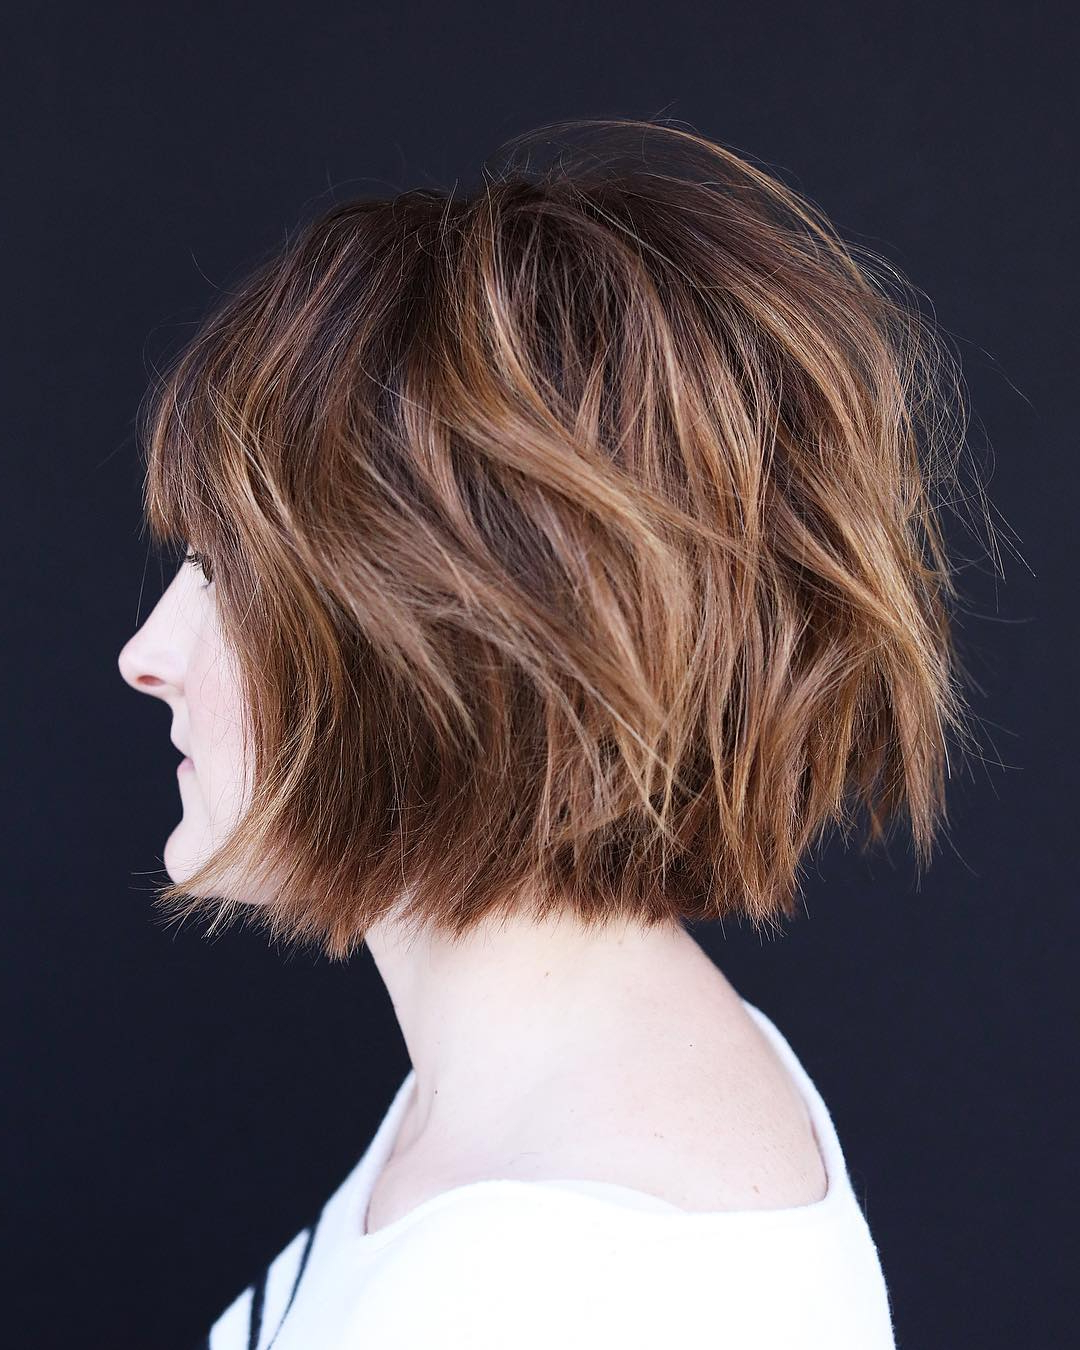 40 Modern Shag Haircuts For Women To Make A Splash Pertaining To Jaw Length Shaggy Bob Hairstyles (View 18 of 20)